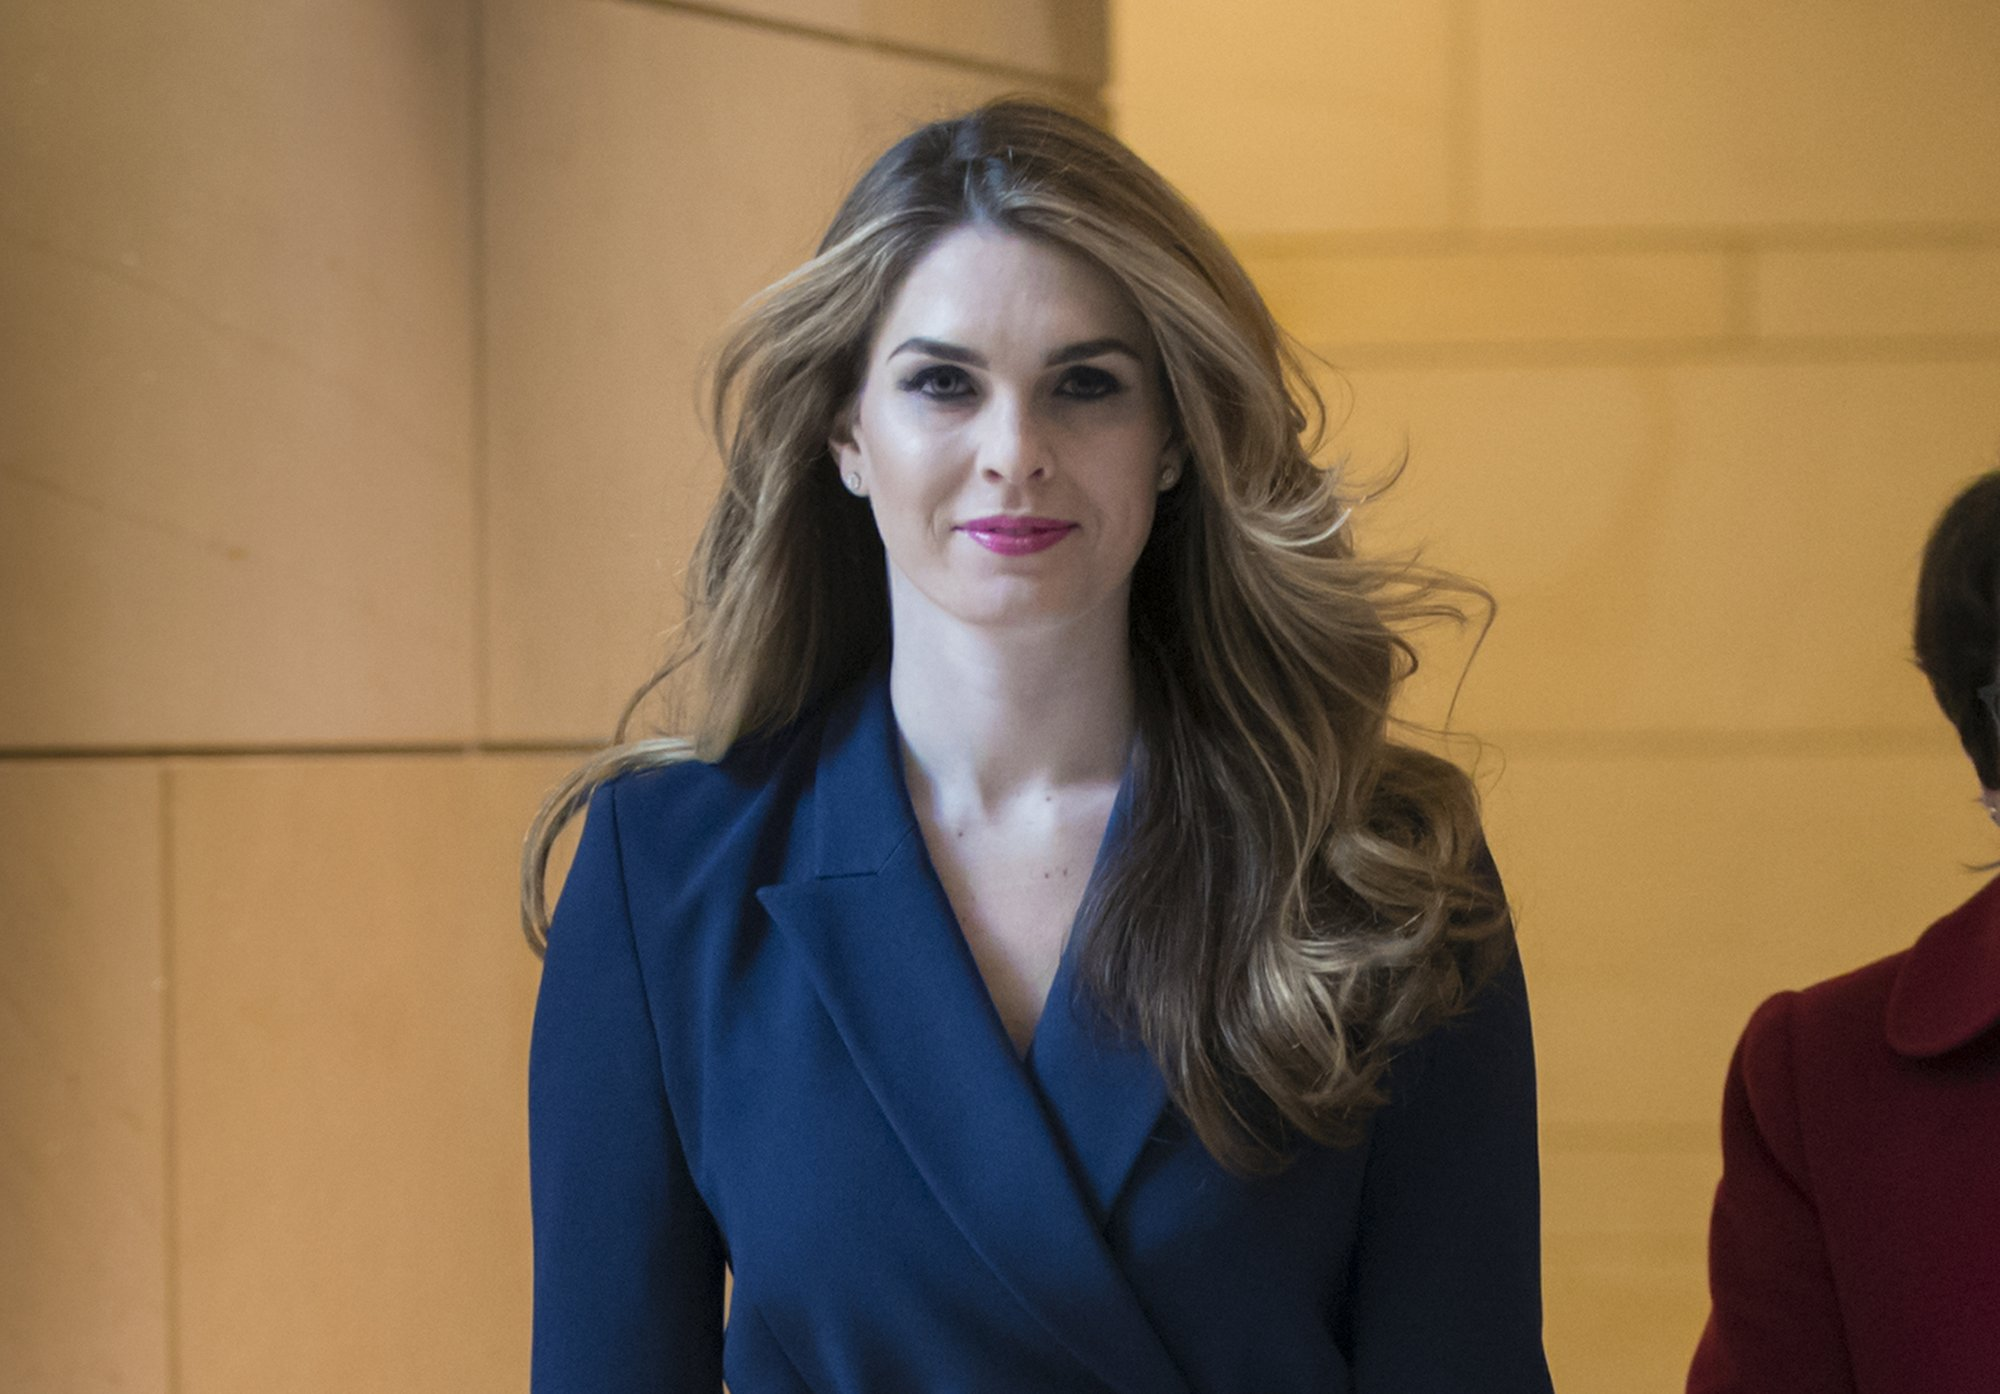 Judiciary panel to interview ex-Trump aide Hicks